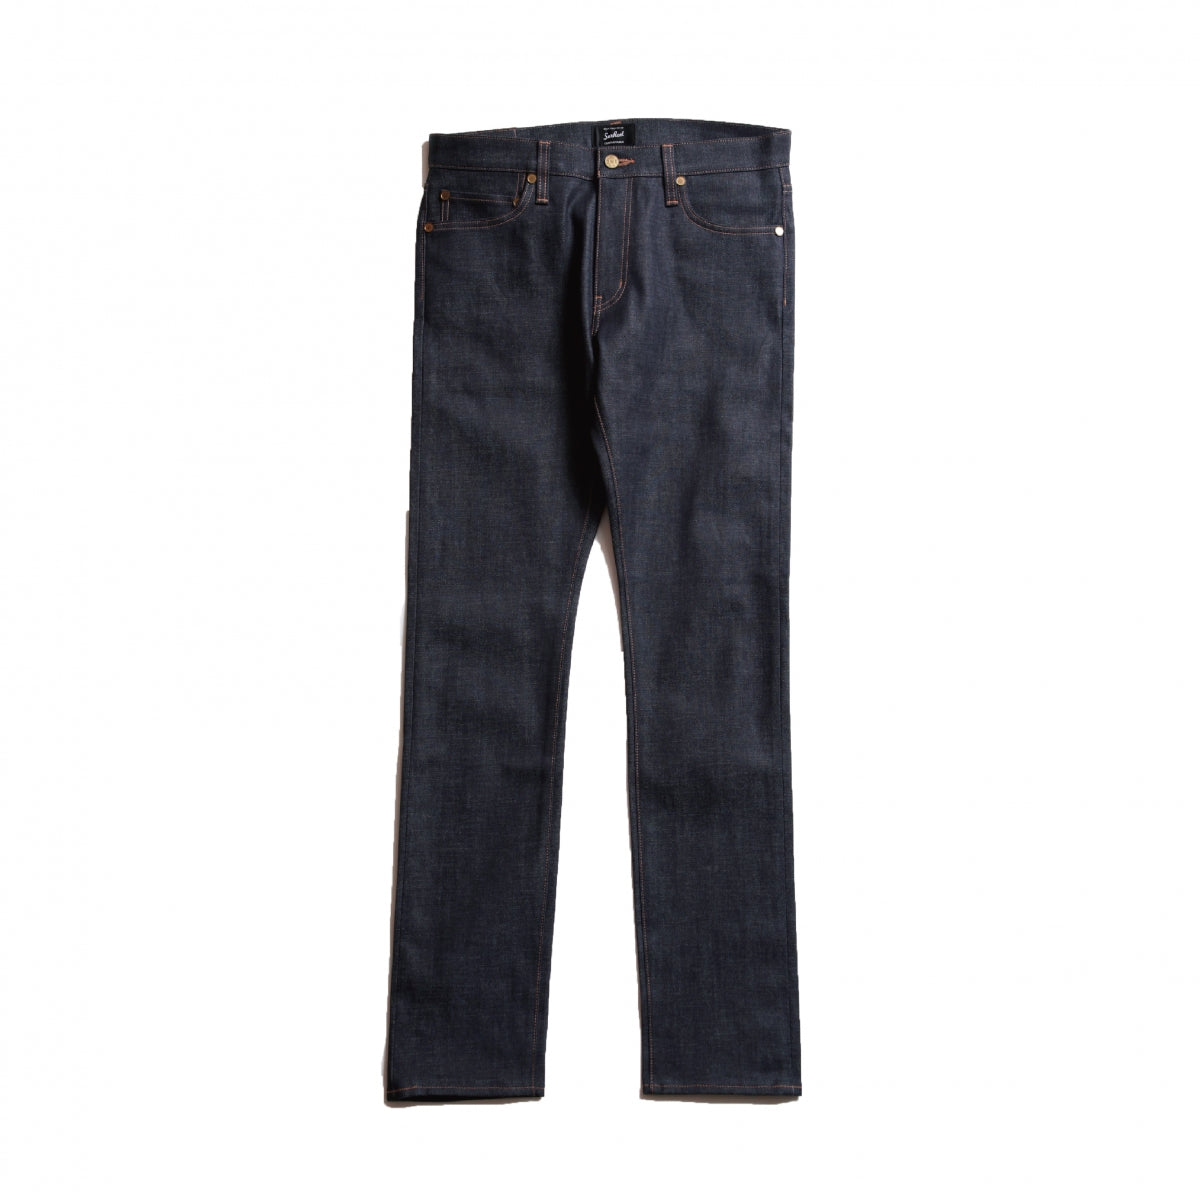 Trusk_Stretch Blend Selvedge Straight Denim